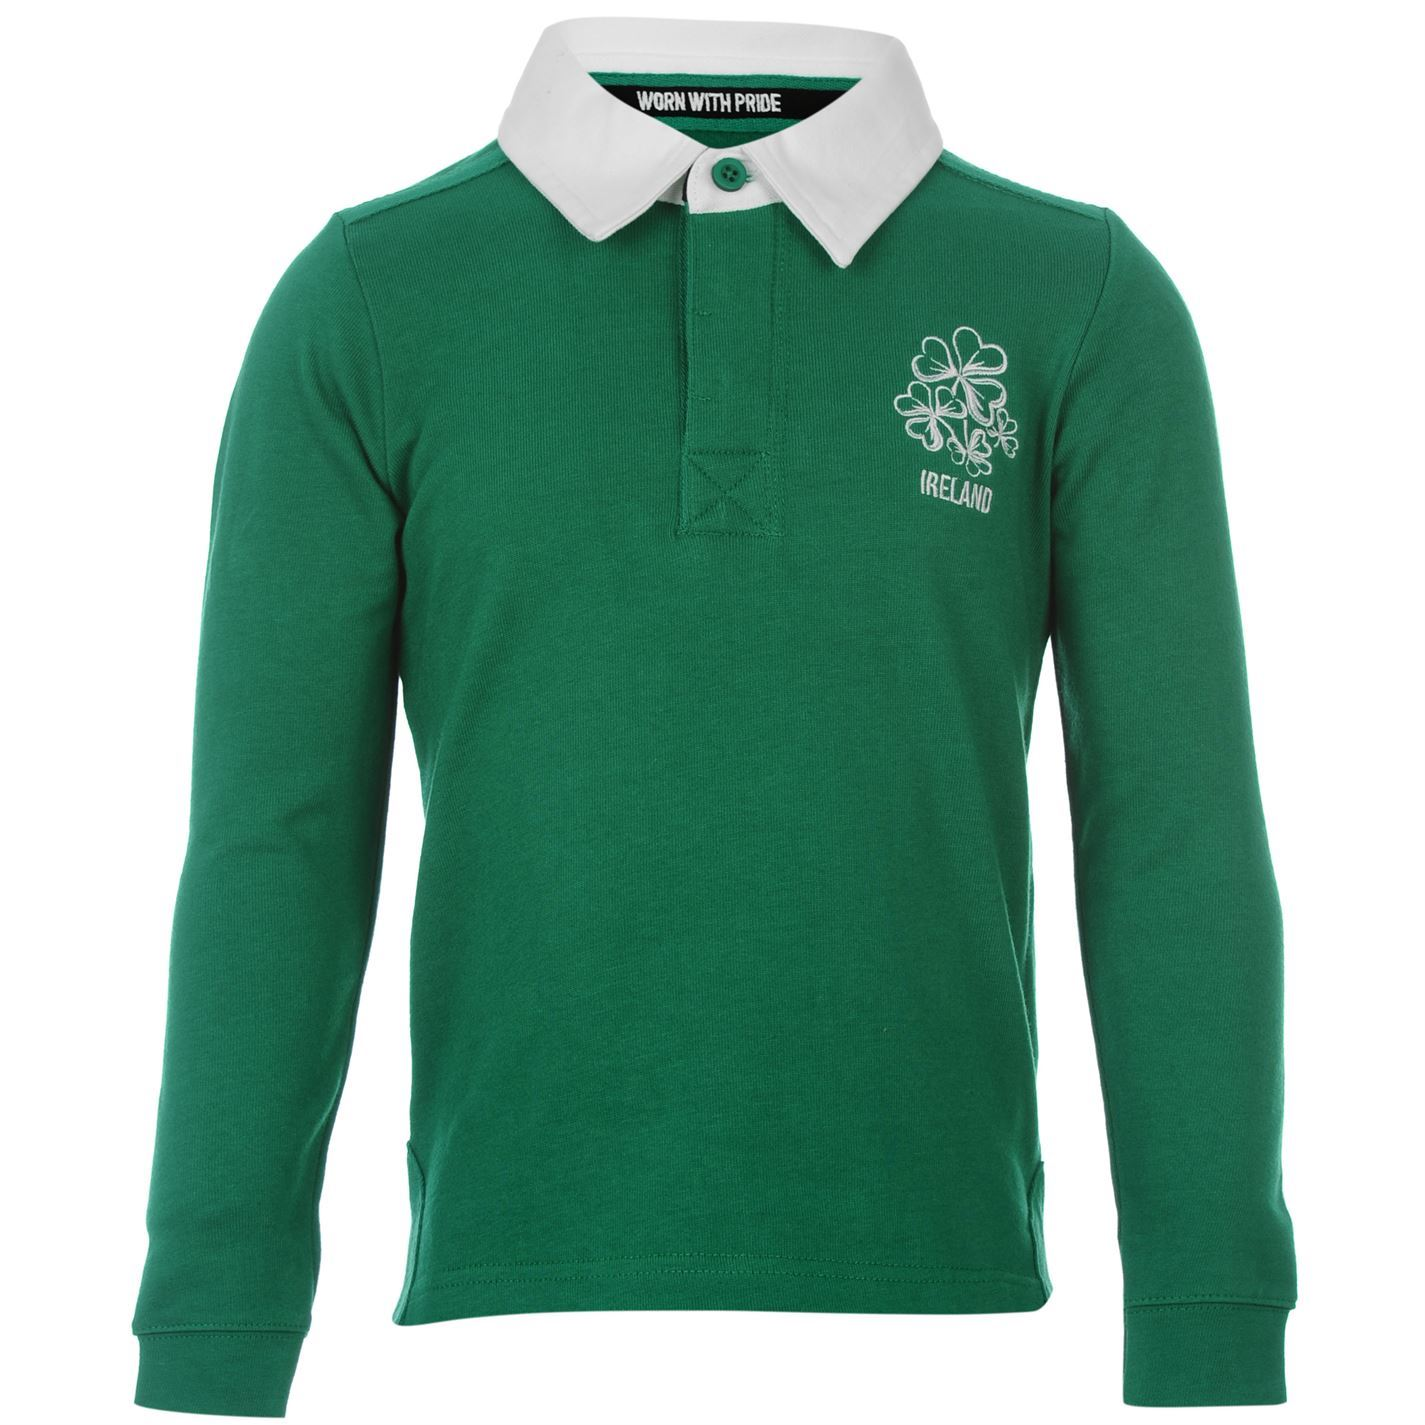 The roeprocjfc.ga Rugby Store - Shop our great collection of Rugby Shirts & Rugby Boots from the top Rugby teams in the world. Free Delivery Available. Pay With PayPal.